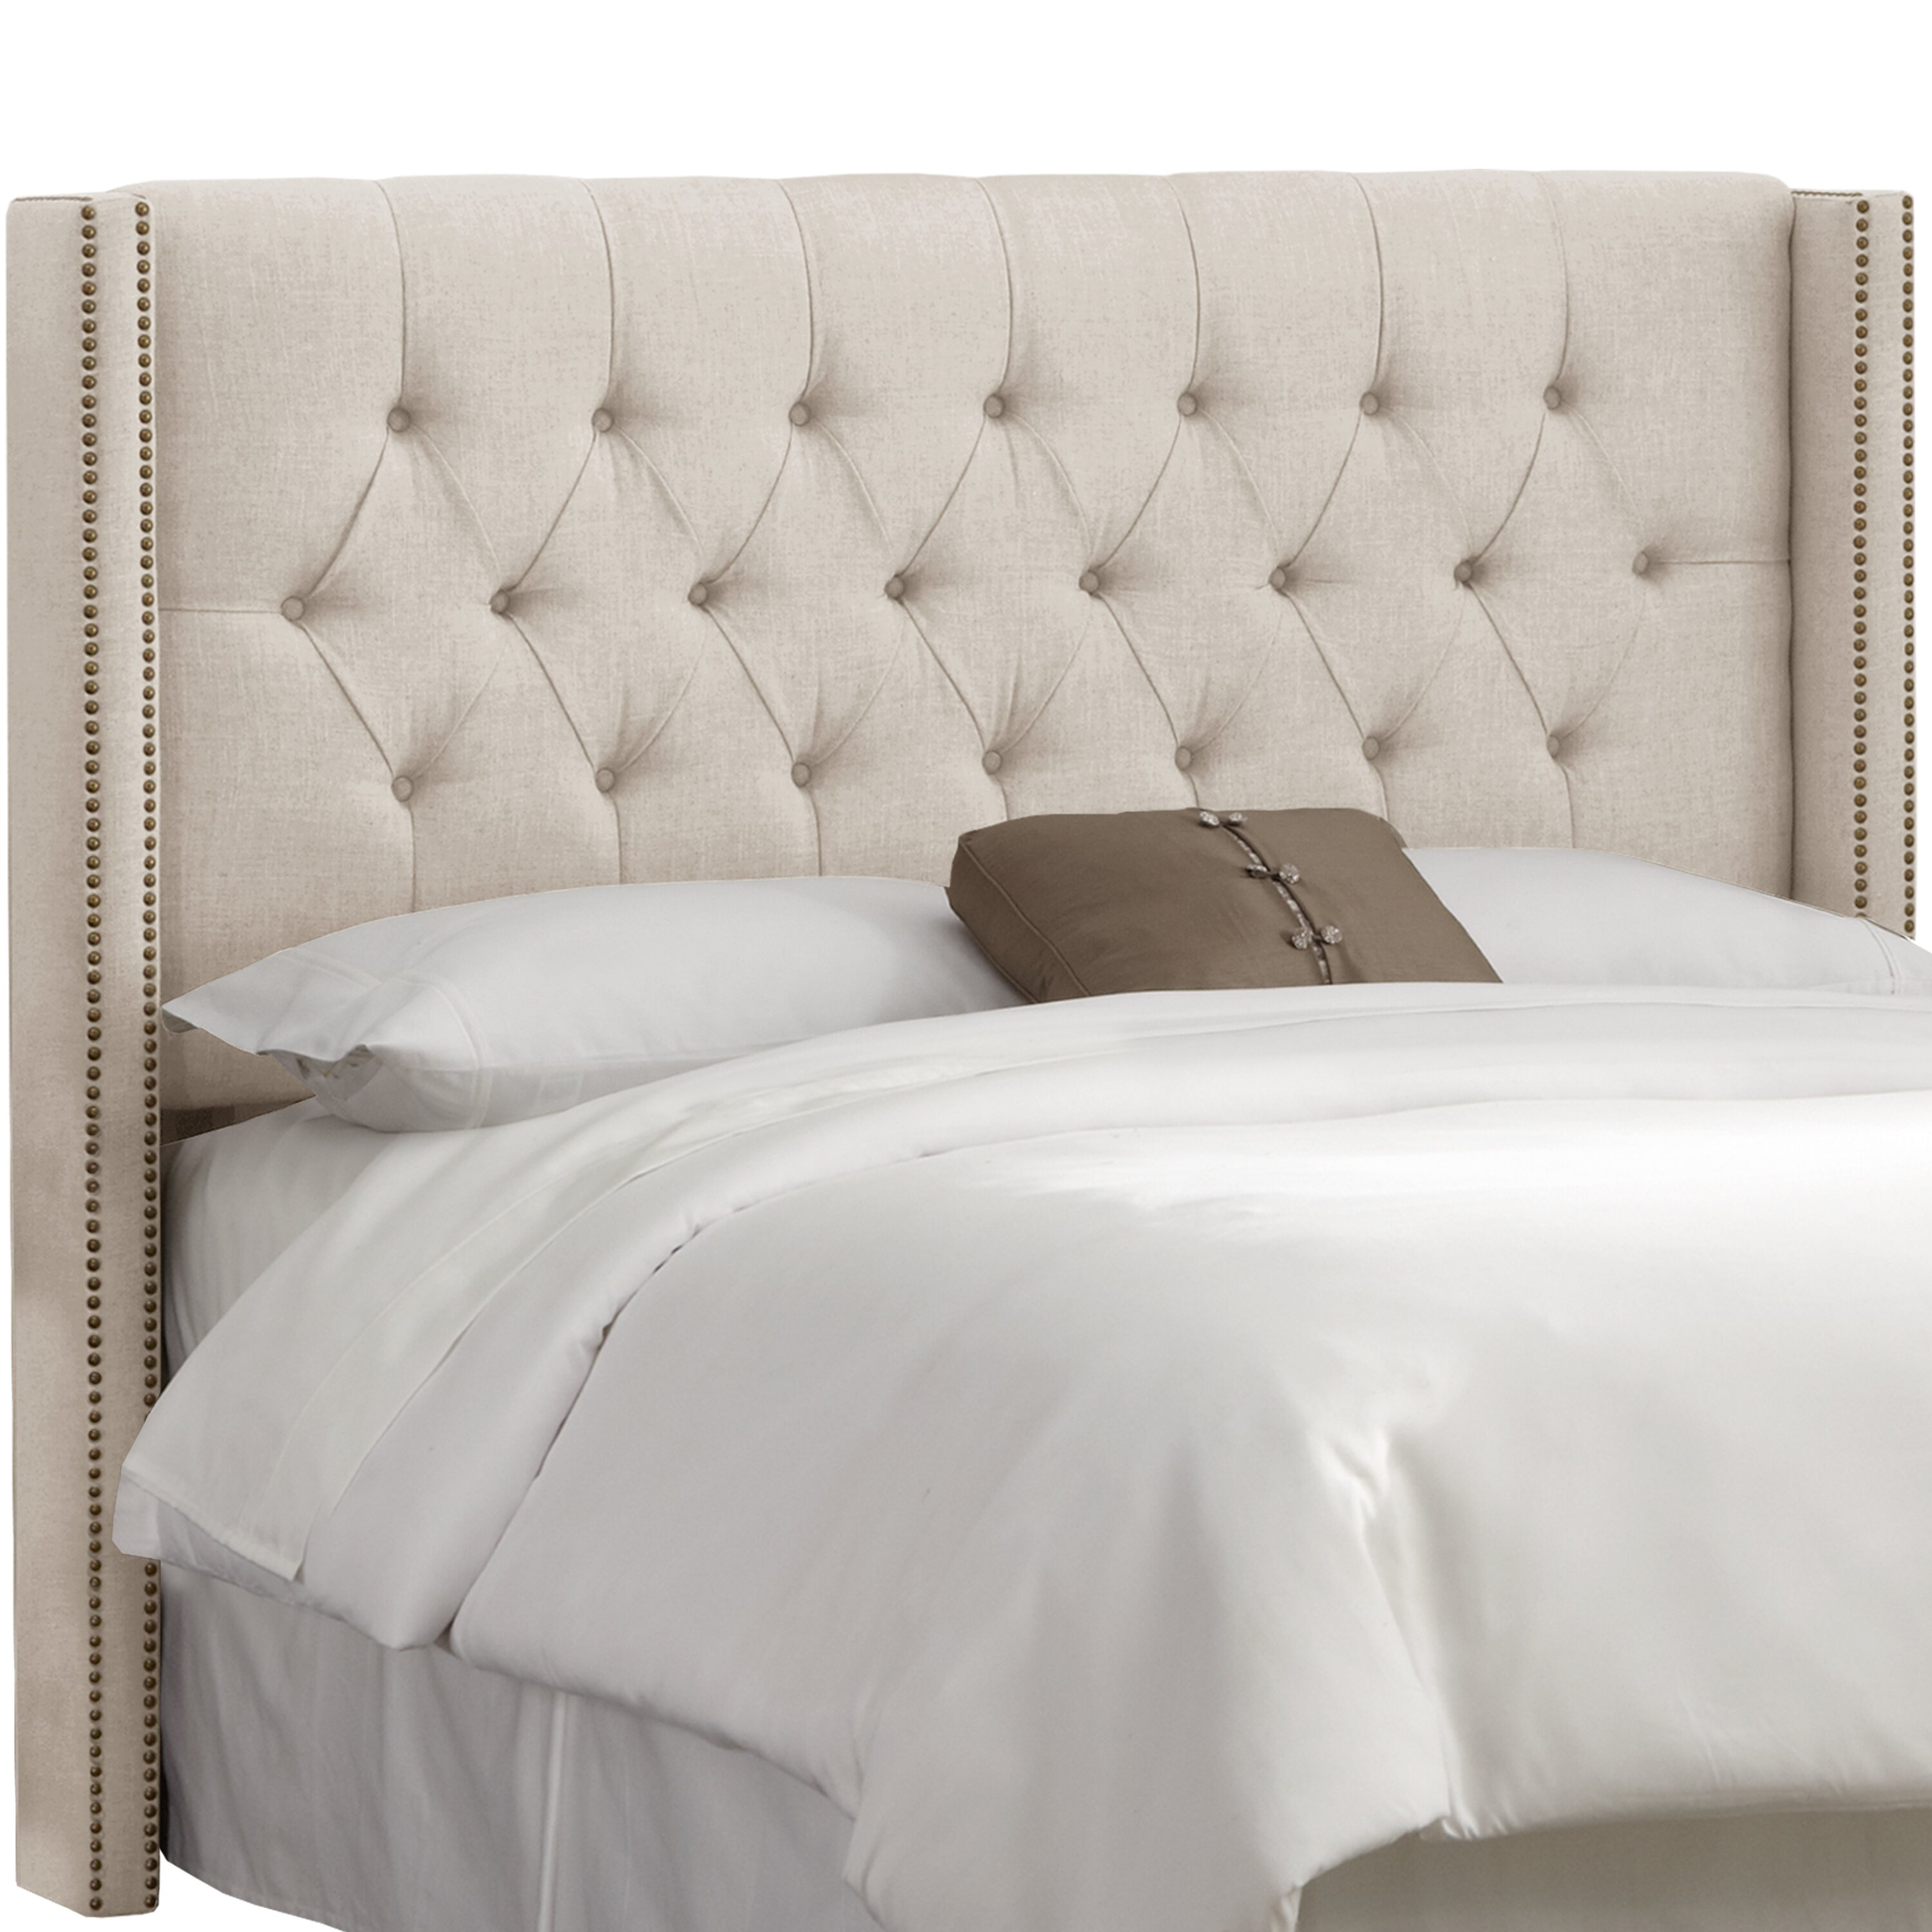 House of Hampton Grammont Tufted Linen Upholstered Headboard & Reviews | Wayfair